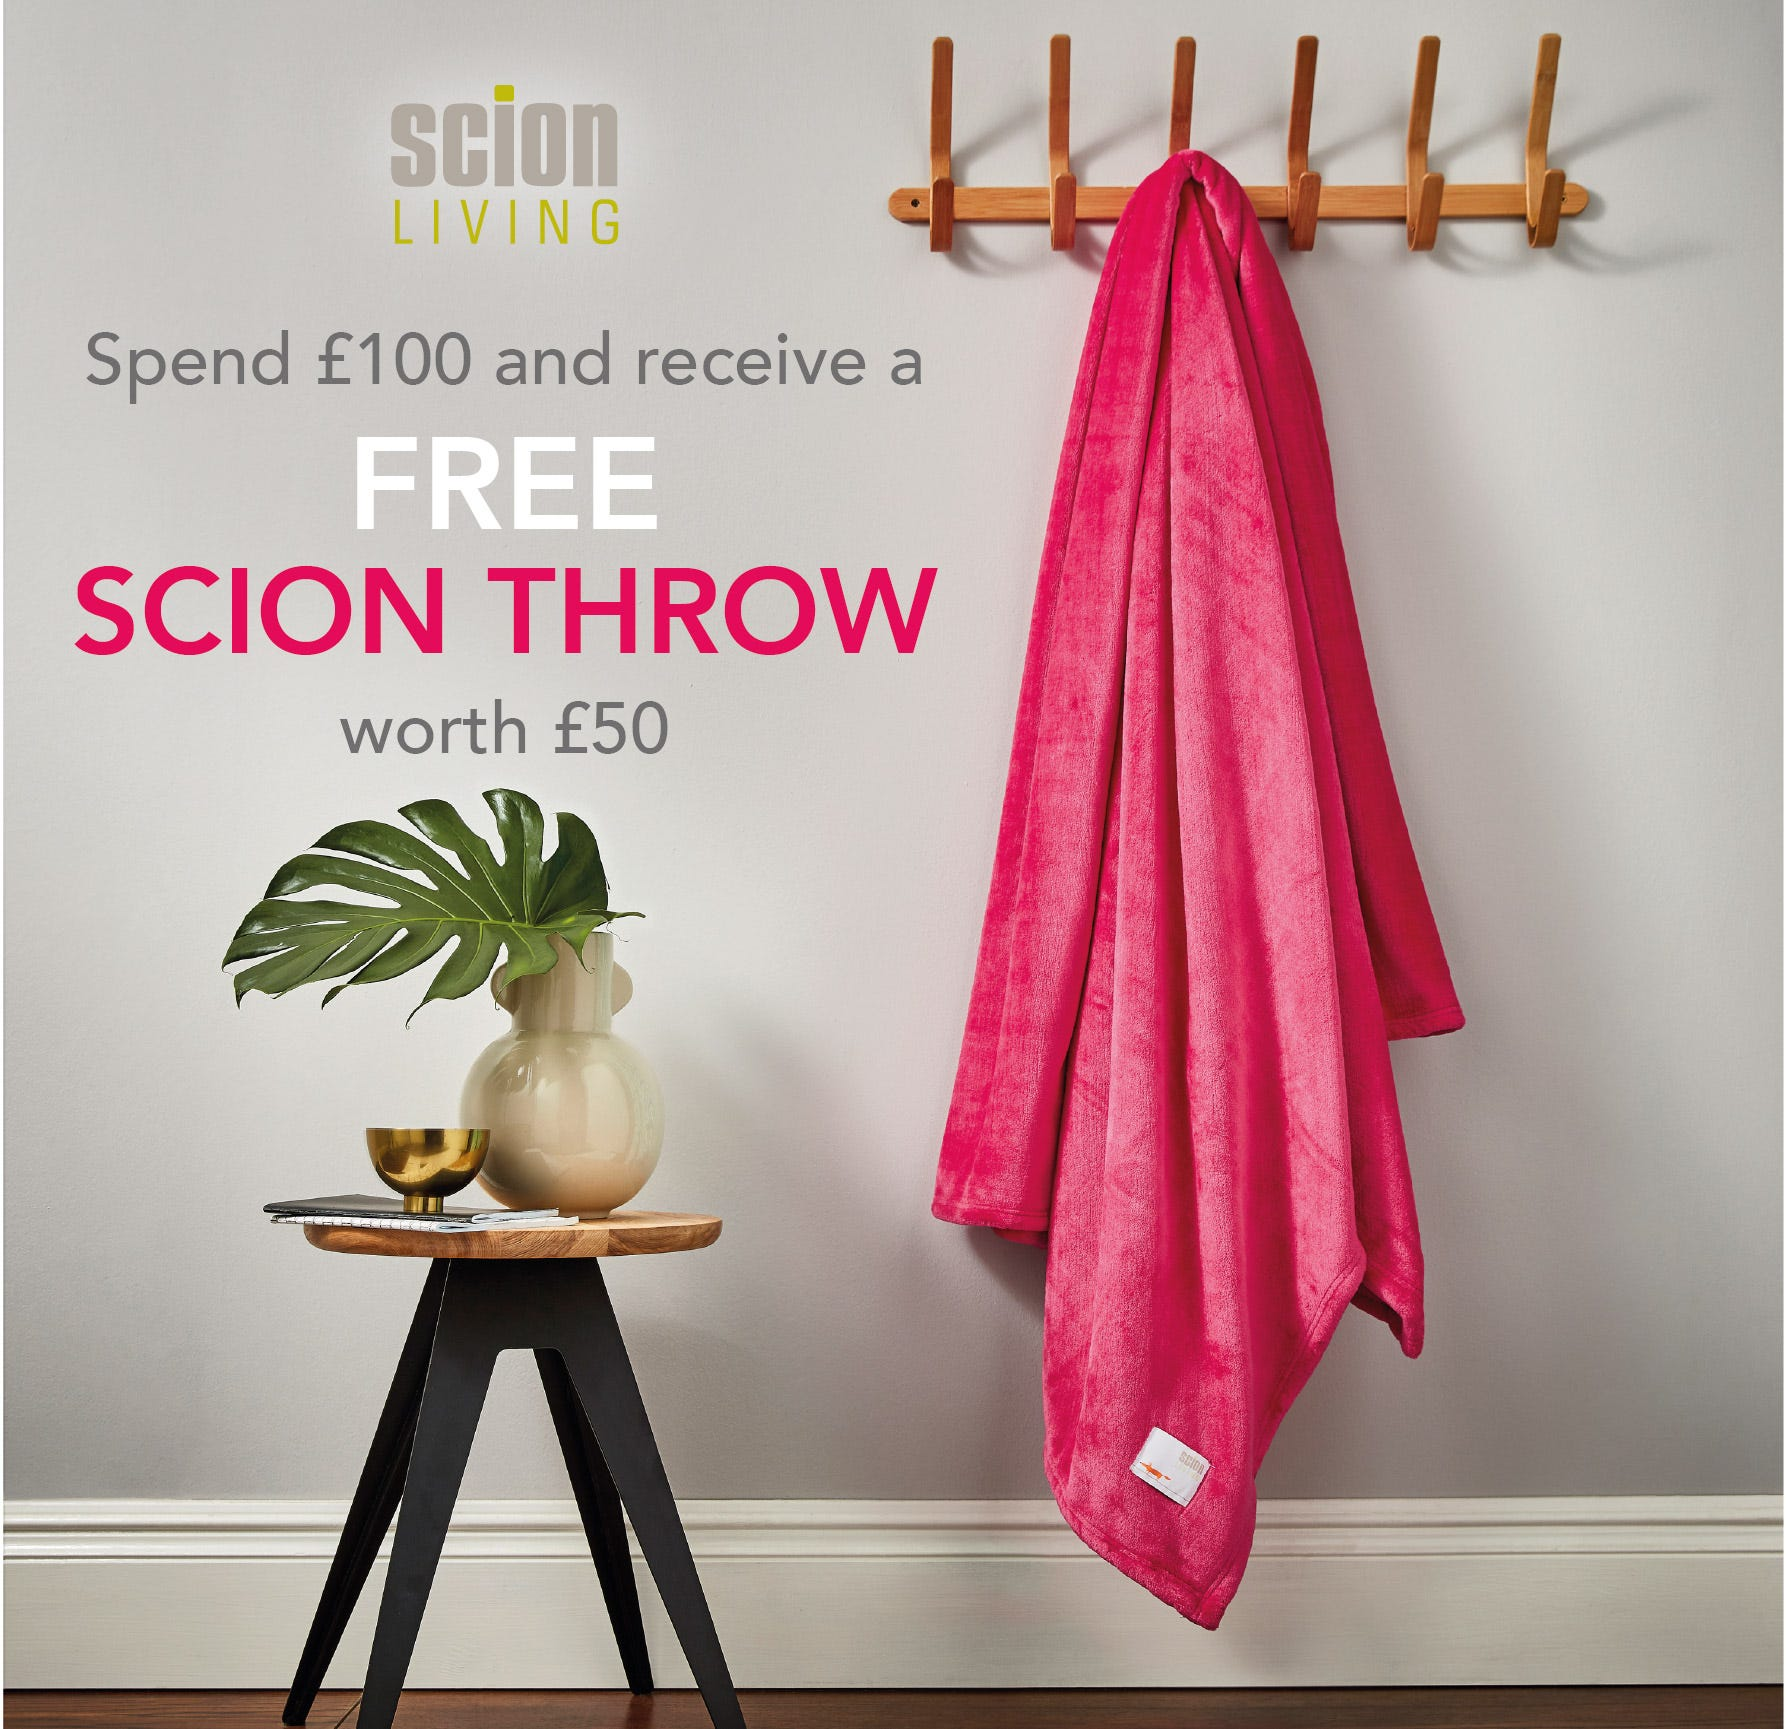 Free Scion Throw When You Spend £100 or more